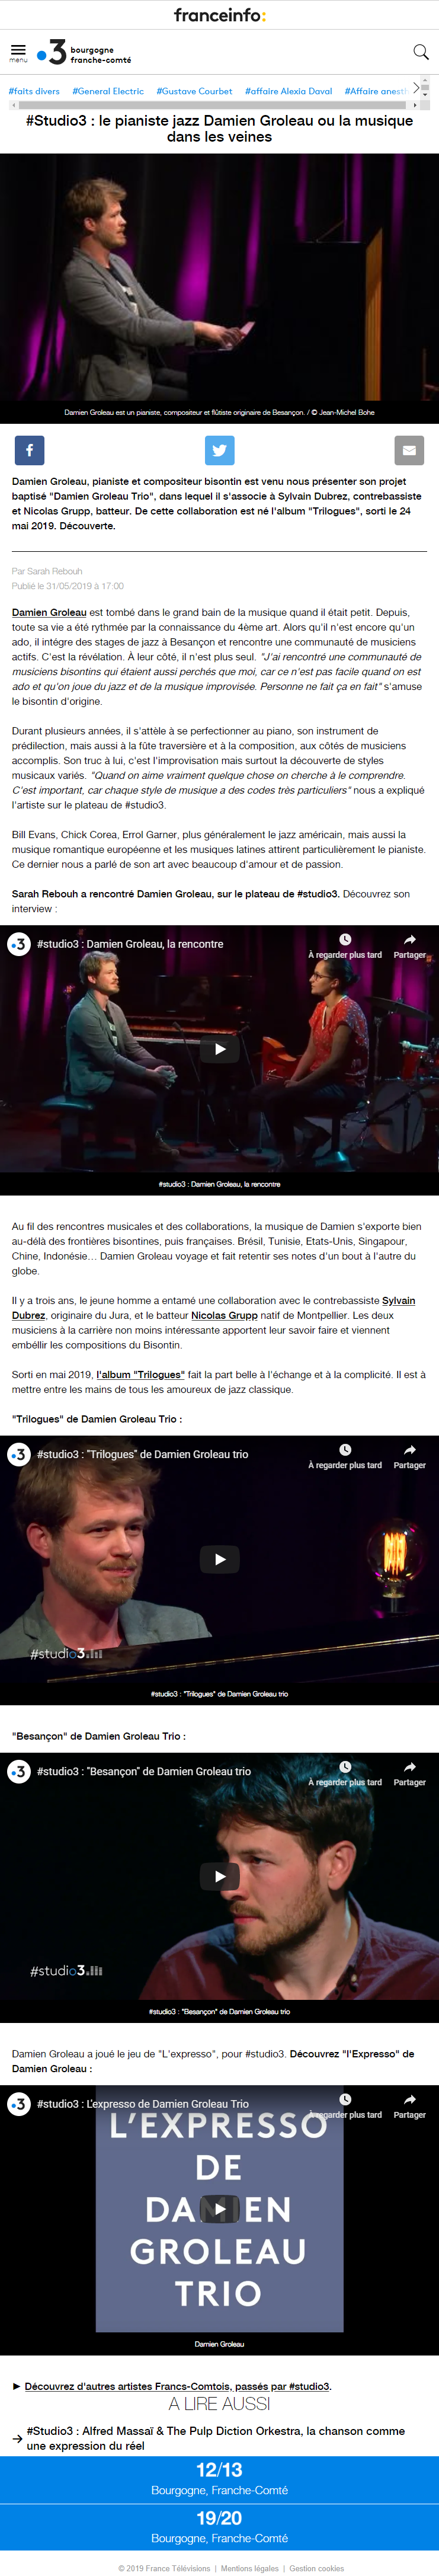 France 3 - See the screenshot of the article